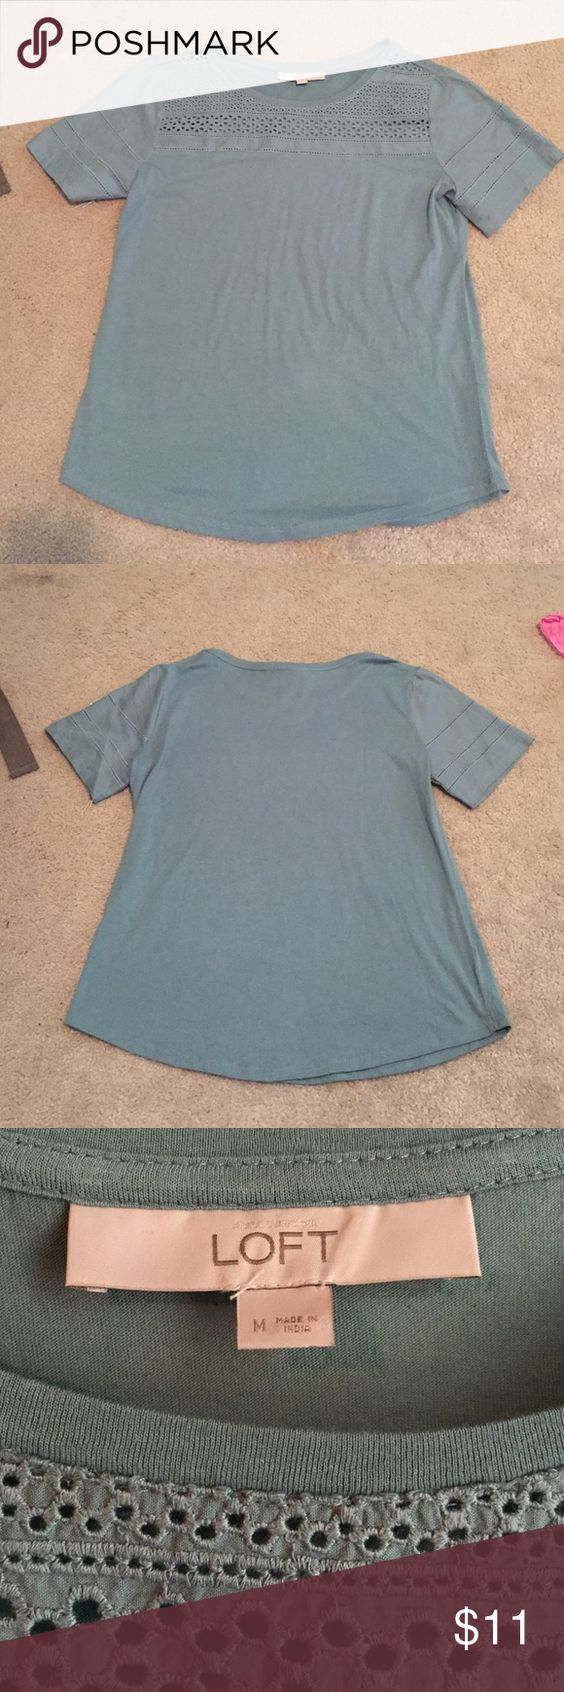 Loft top Blue loft top with cute crochet detail on top and sleeves. NWOT never worn LOFT Tops